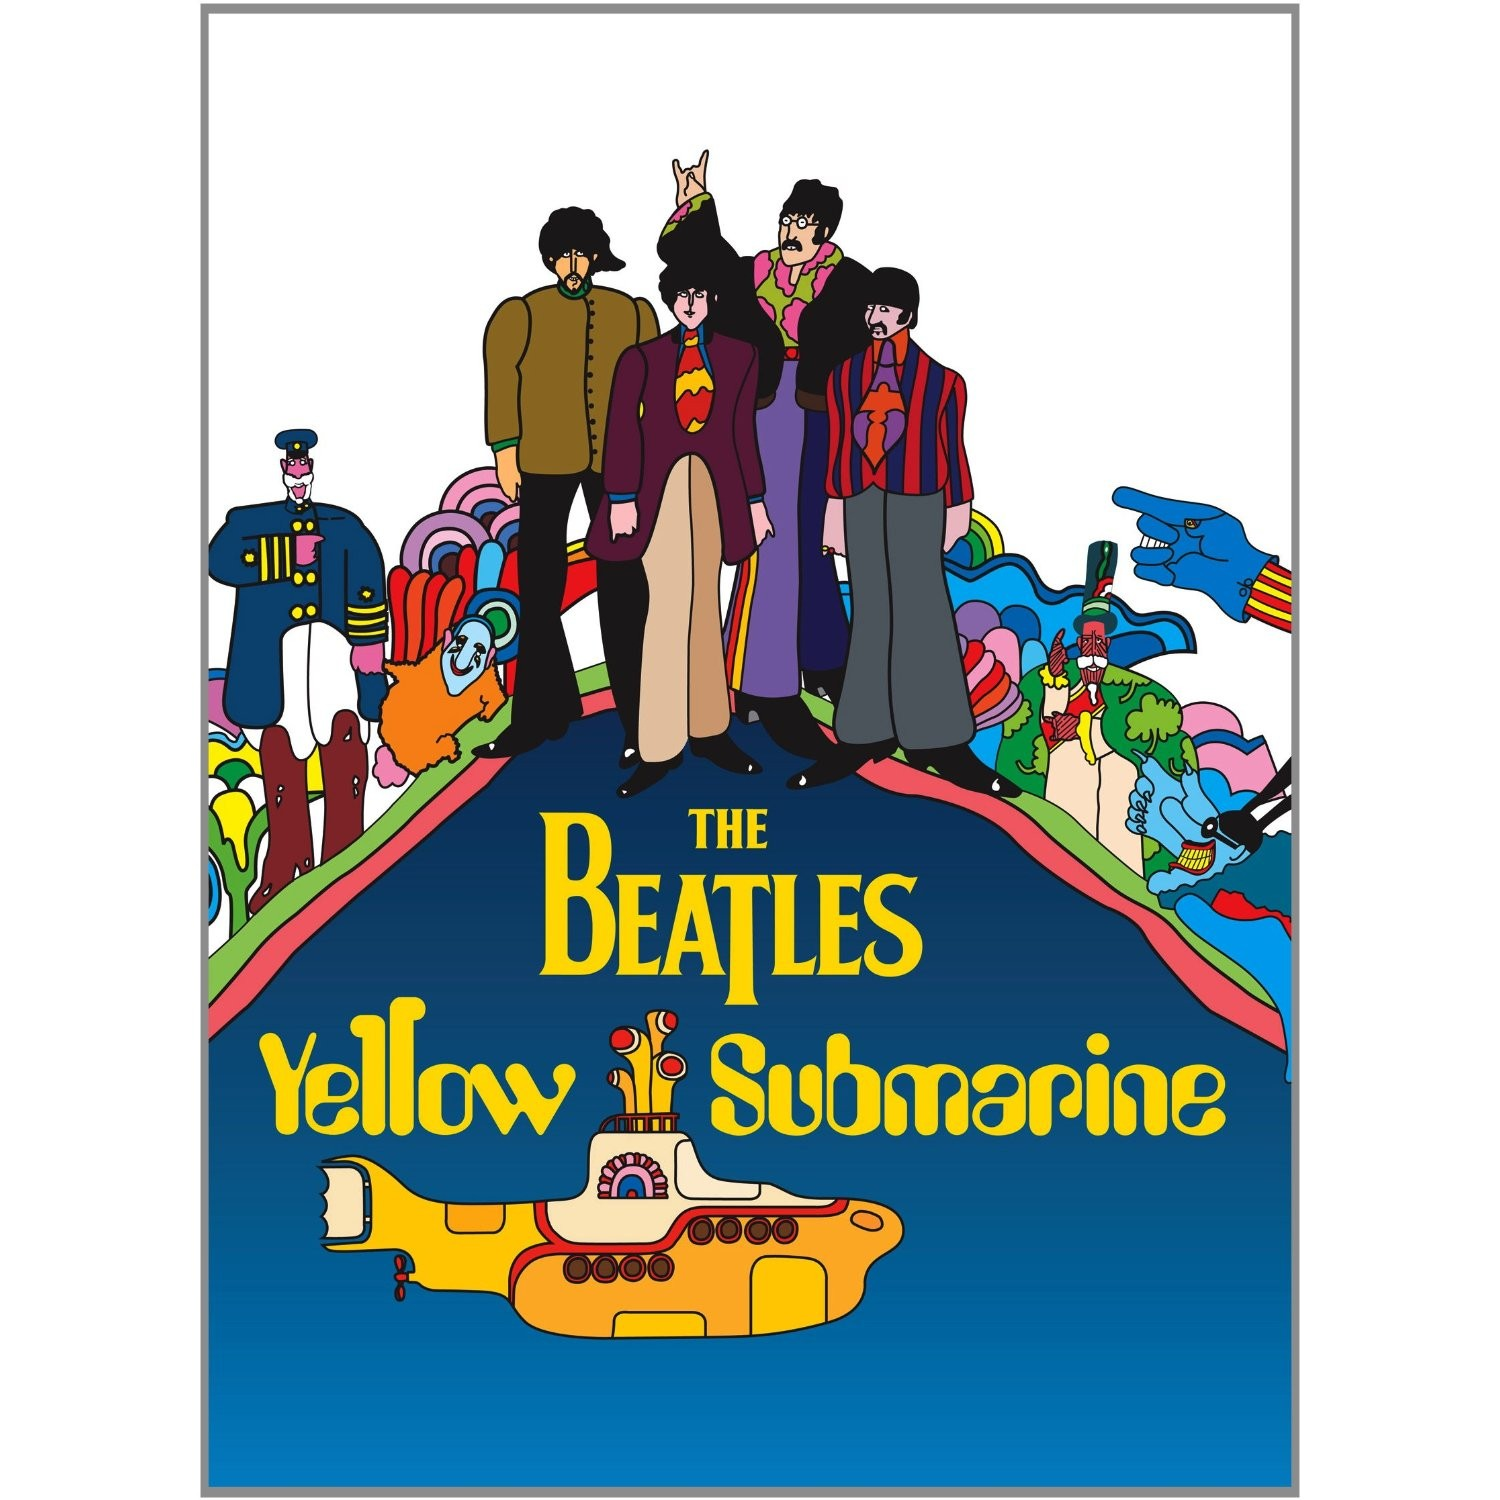 Yellow-submarine-poster.jpg